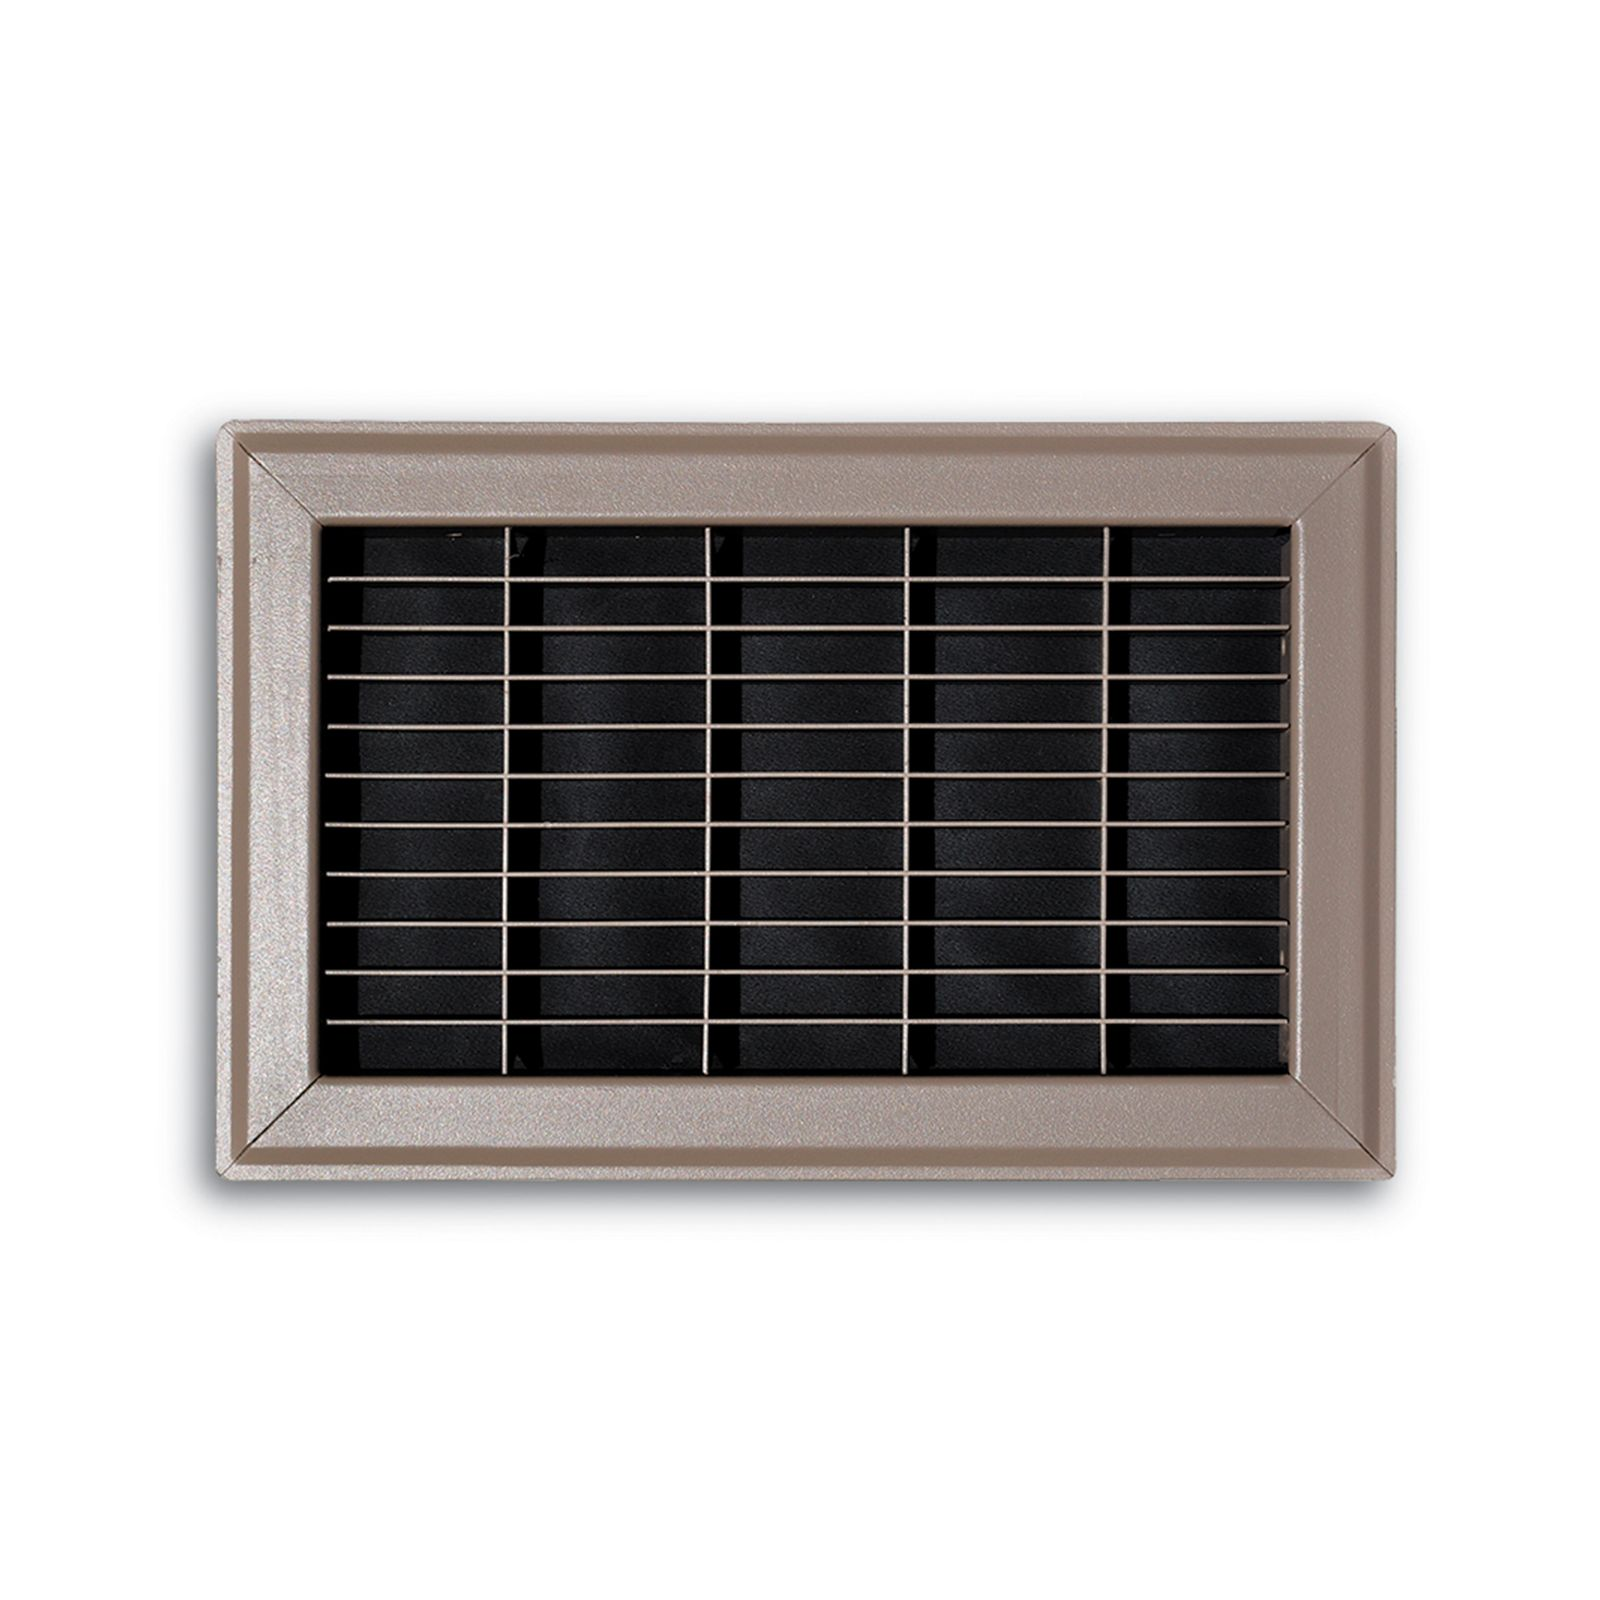 "TRUaire 154R 04X08 - Steel Heavy Gauge Floor Return Air Grille, Brown, 04"" X 08"""